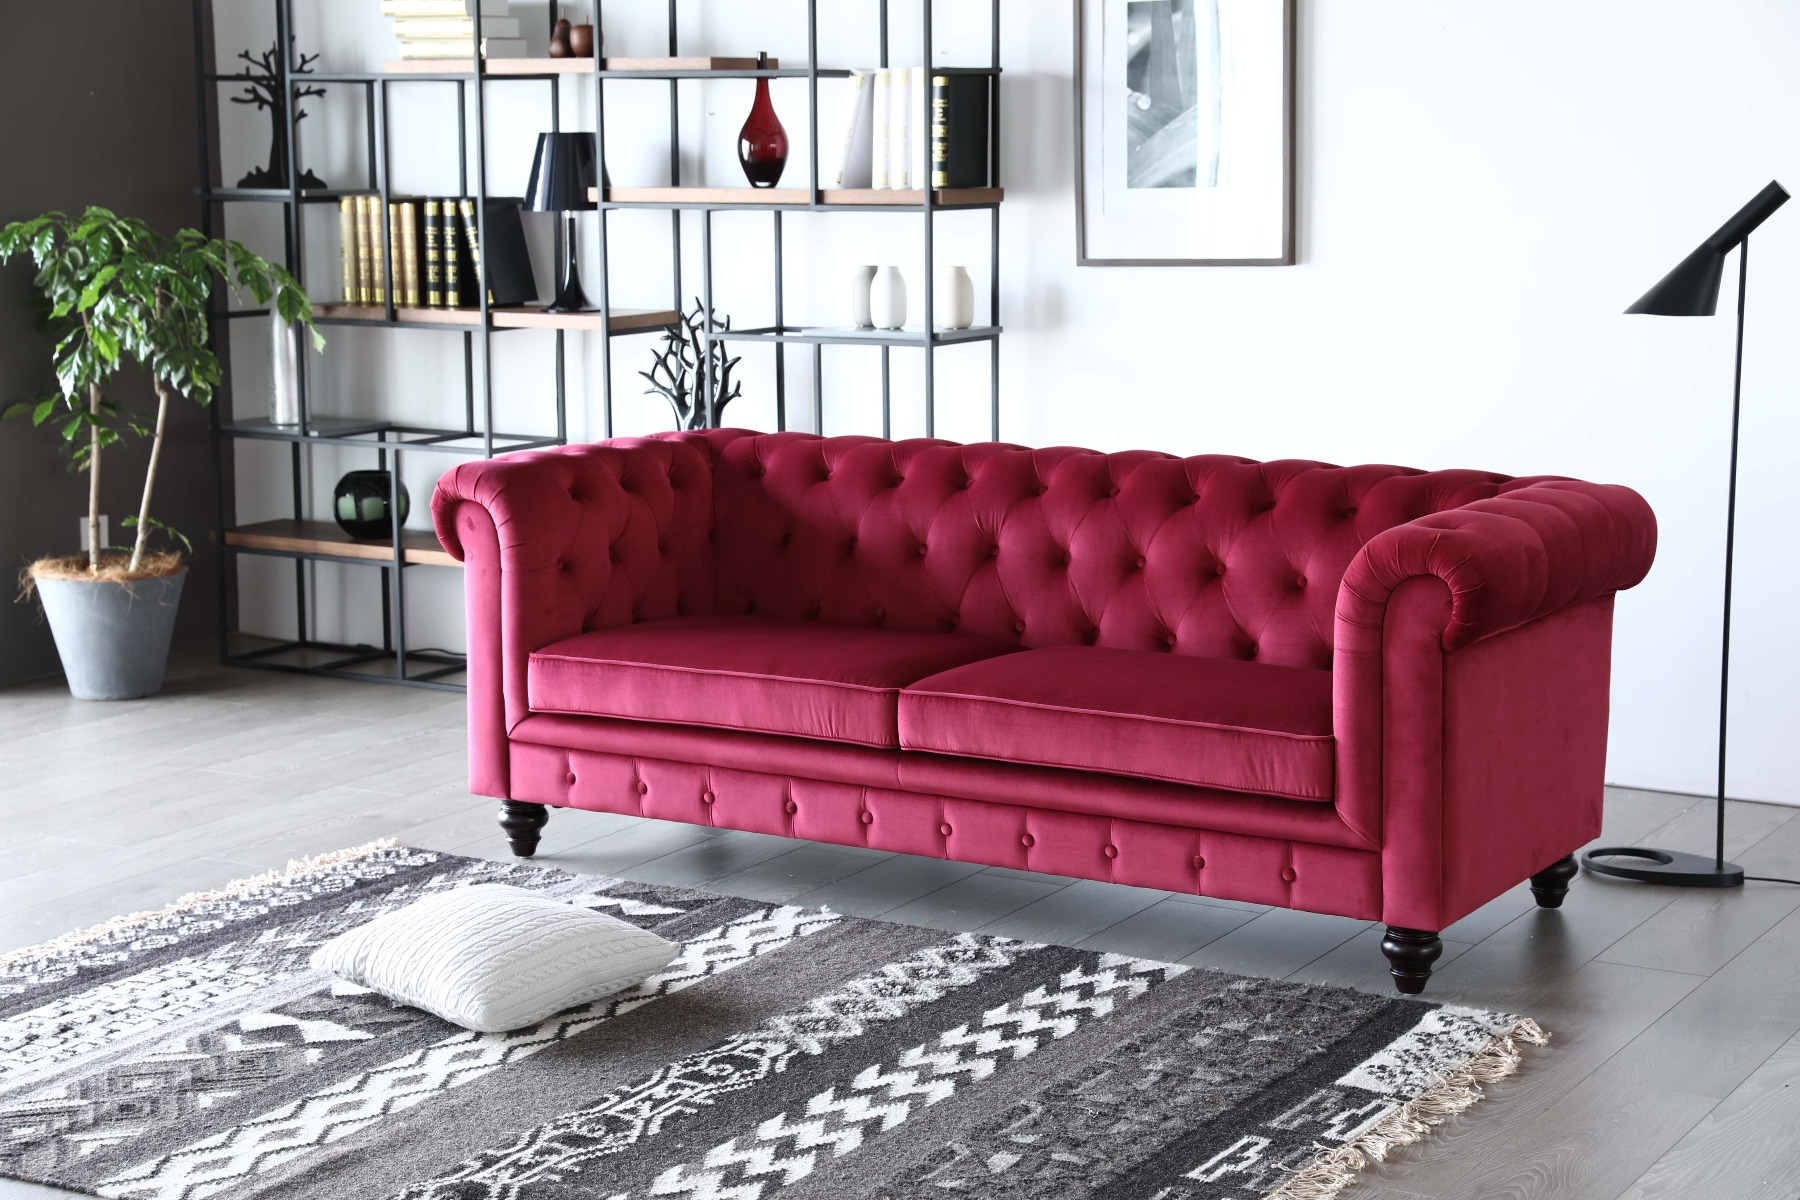 The classical sofa in an industrial themed living room.